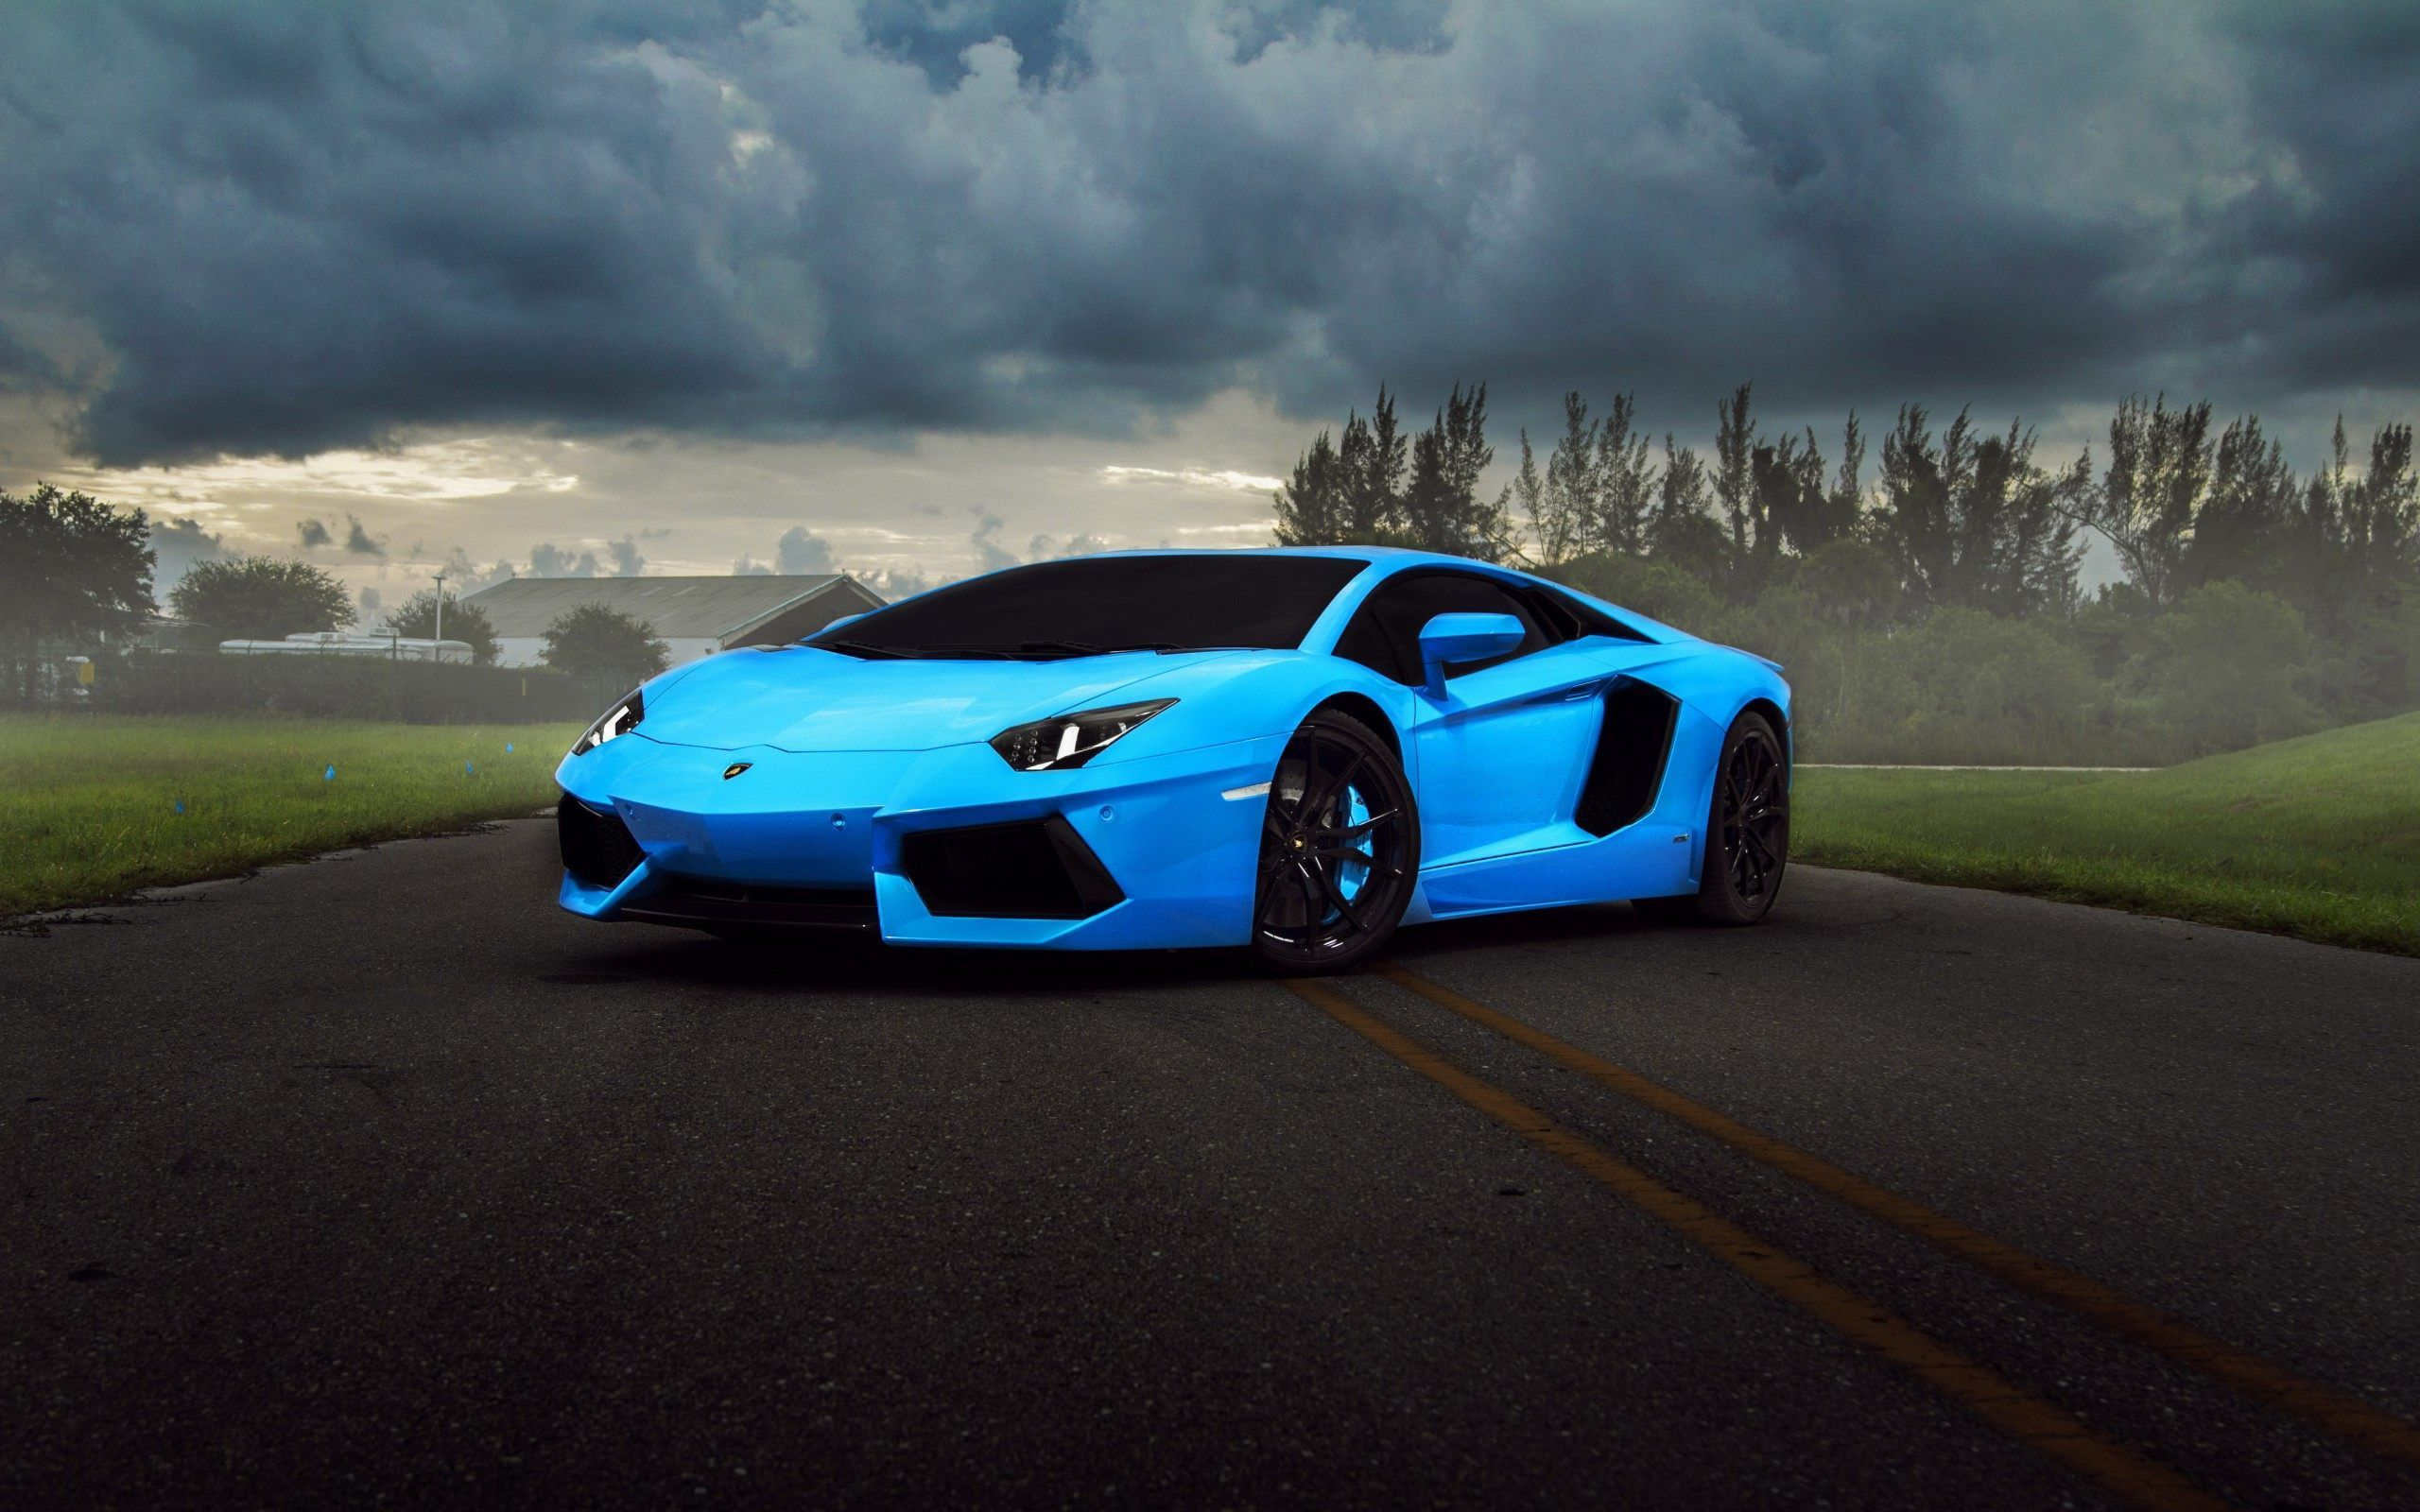 racing horizon team change catch lamborghinis huracan special players sends apologize gift free forza a to with turn lamborghini